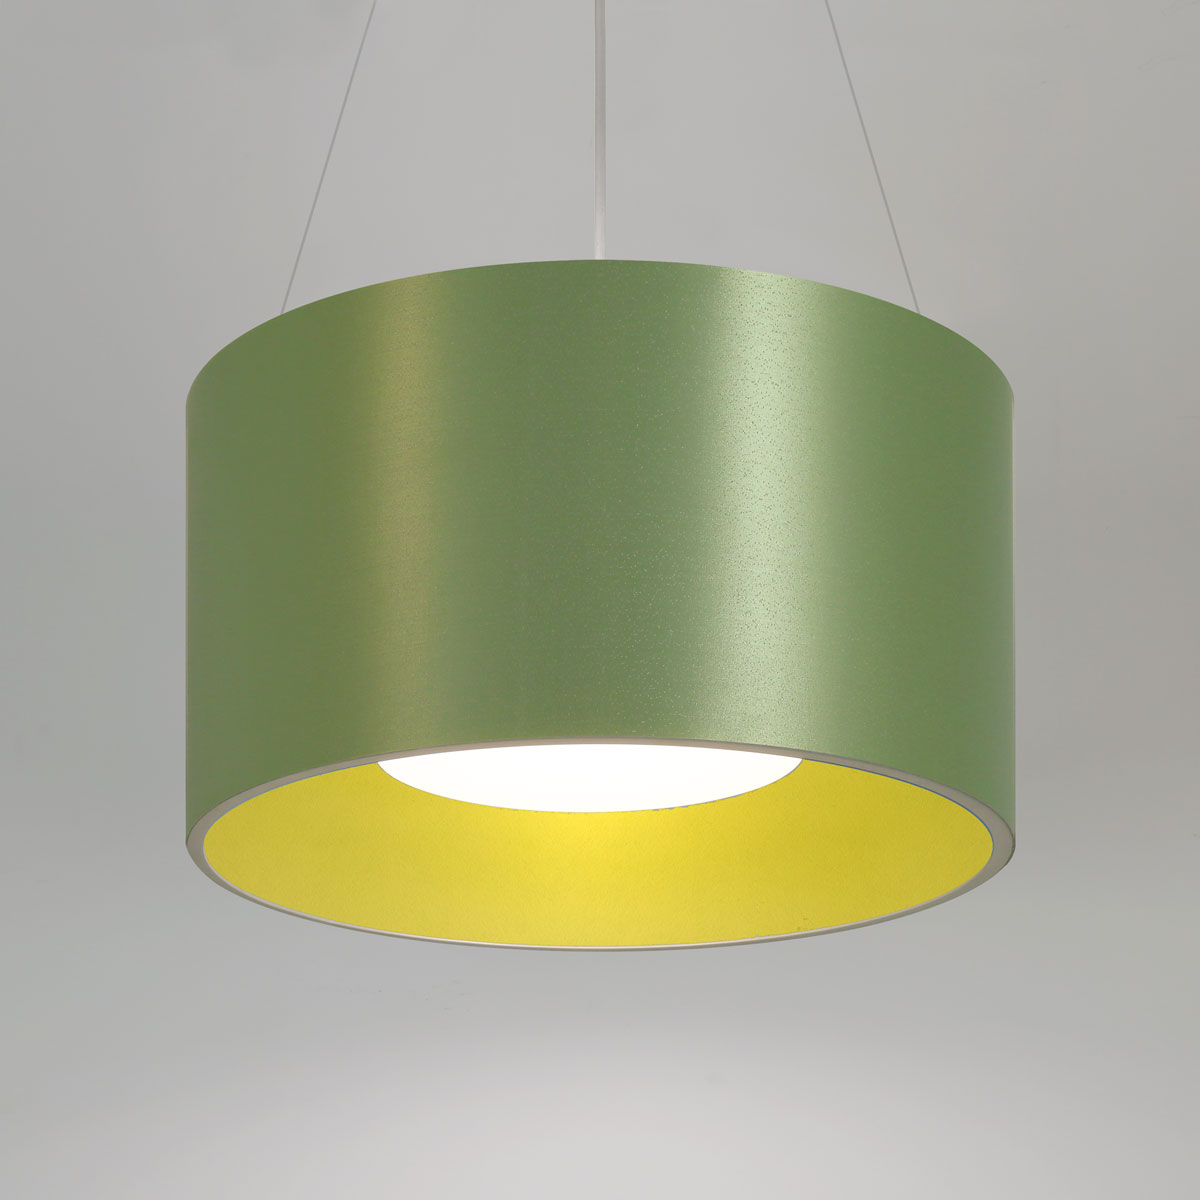 Acoustic LED pendant light. Choose acoustic, or acoustic/Lumenate® shades. Wide range of acoustic and Lumenate® colors/patterns.